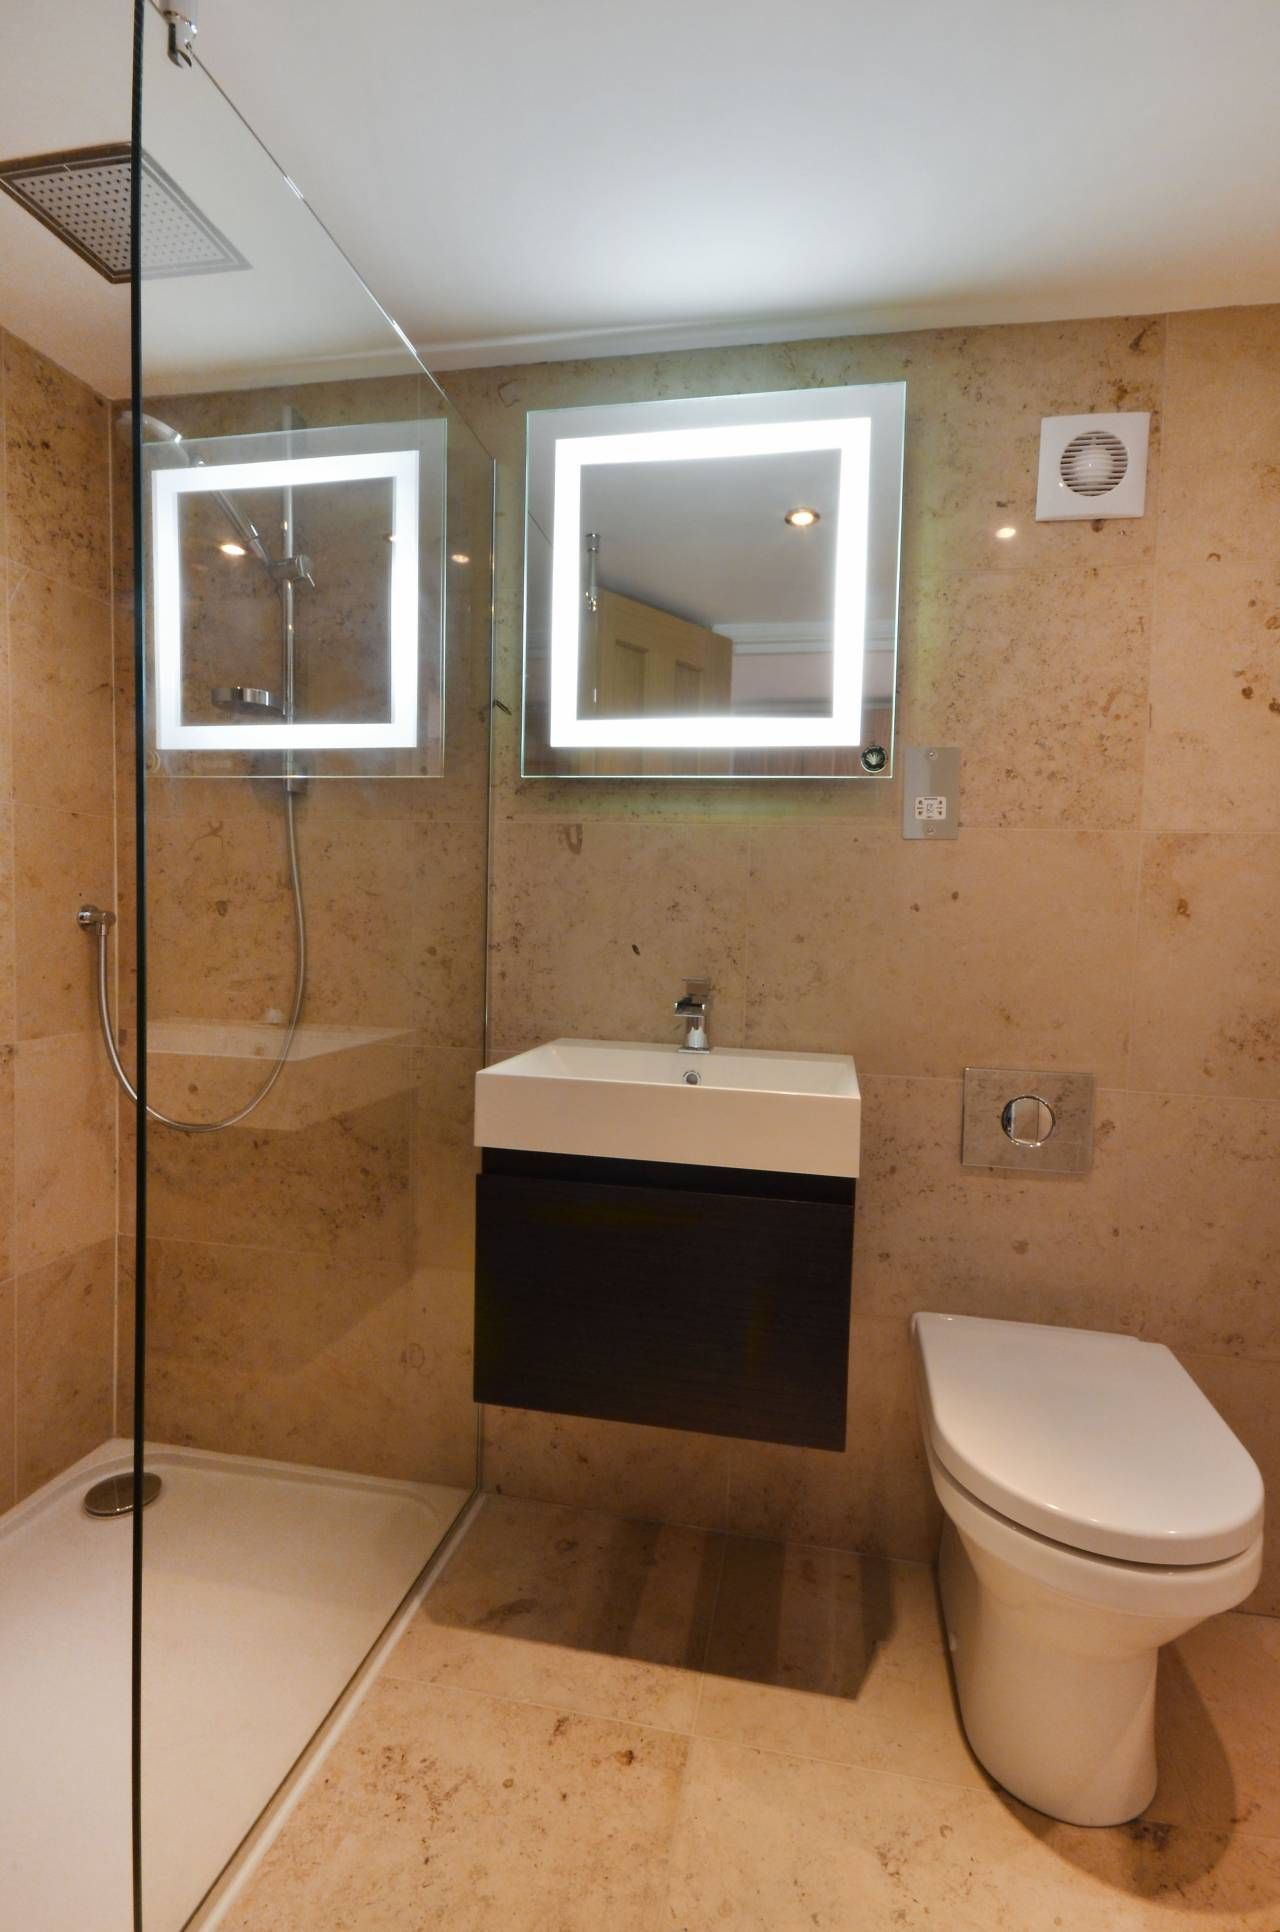 En suite shower room a walk in shower nicely tiled for Interior design wet rooms